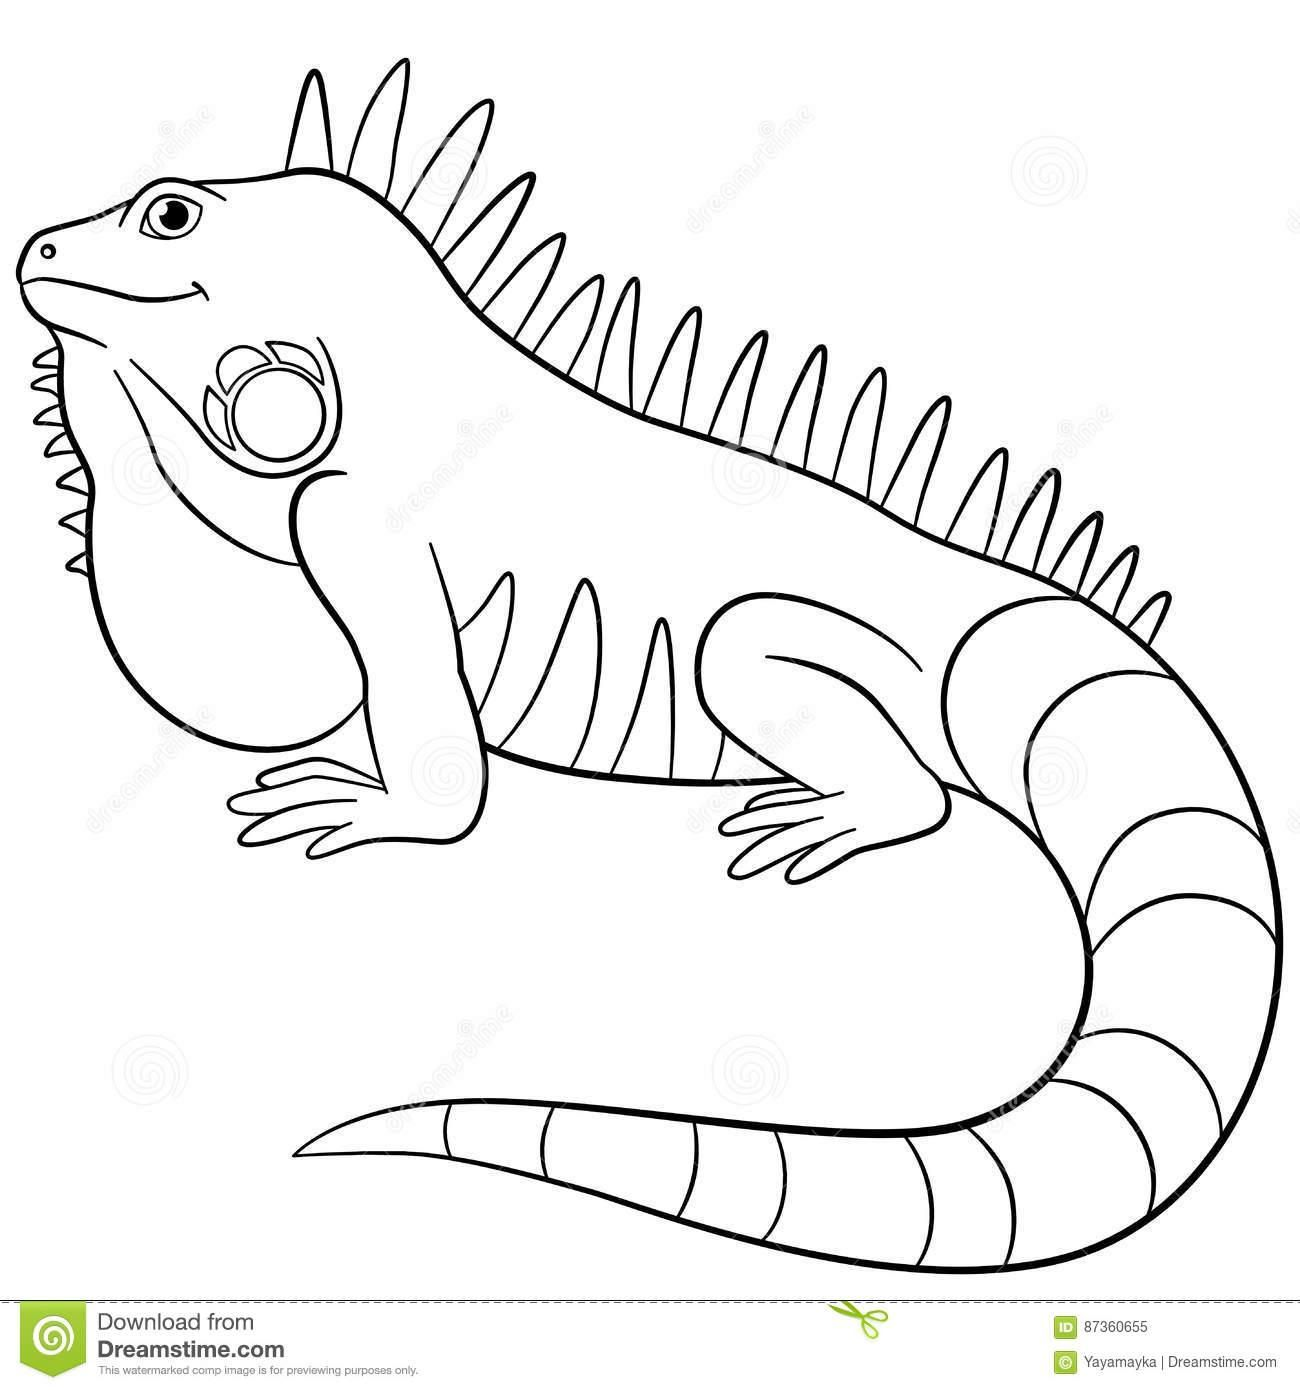 18 Coloring Page Iguana Coloring Pages Coloring Books Online Coloring Pages